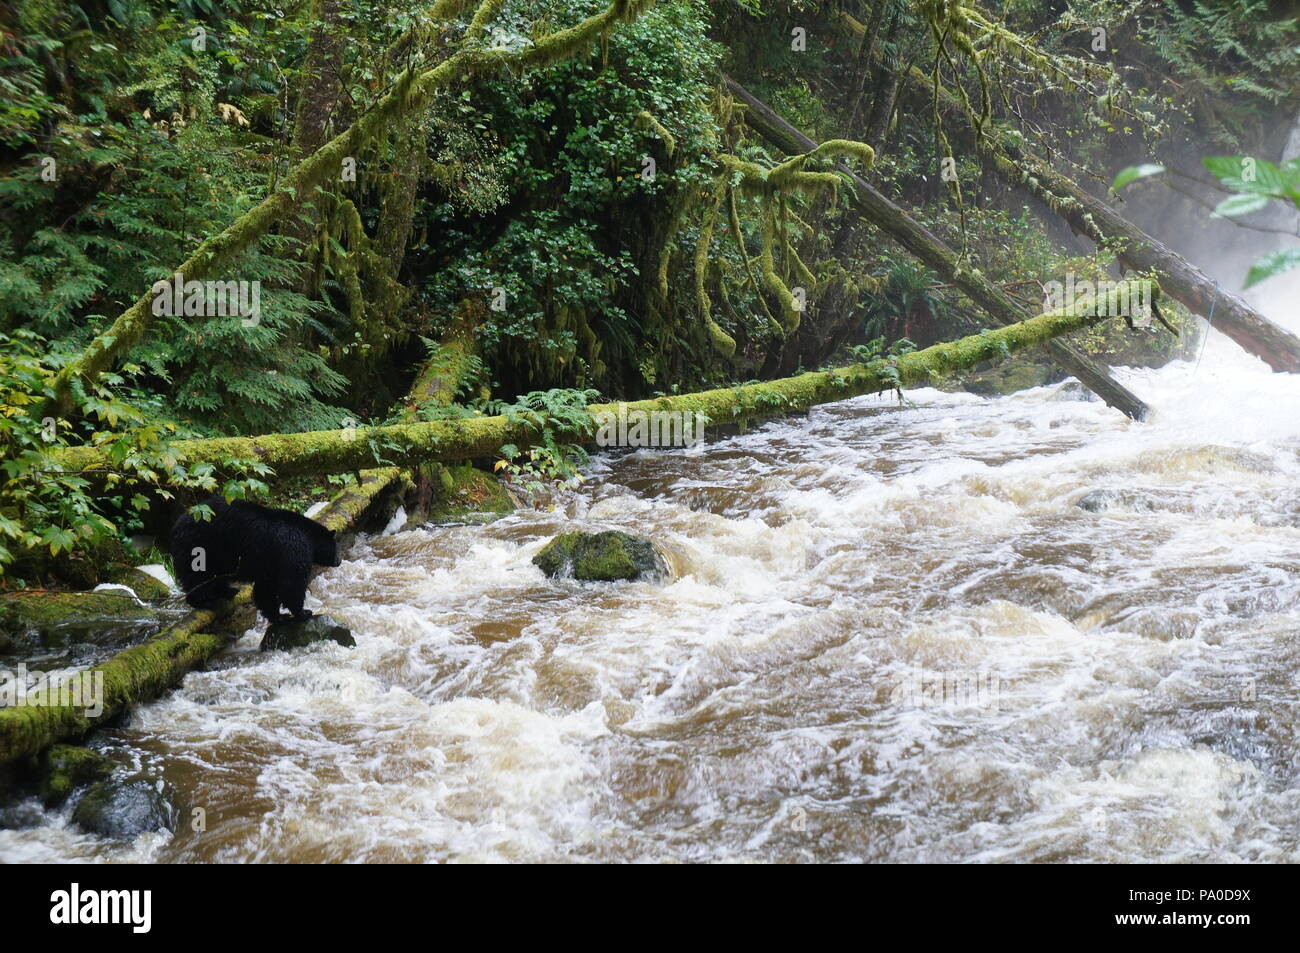 Black bear fishing for salmon beside a raging river, with moss-laden fallen trees in the rain forest near Ucluelet, British Columbia, Canada - Stock Image